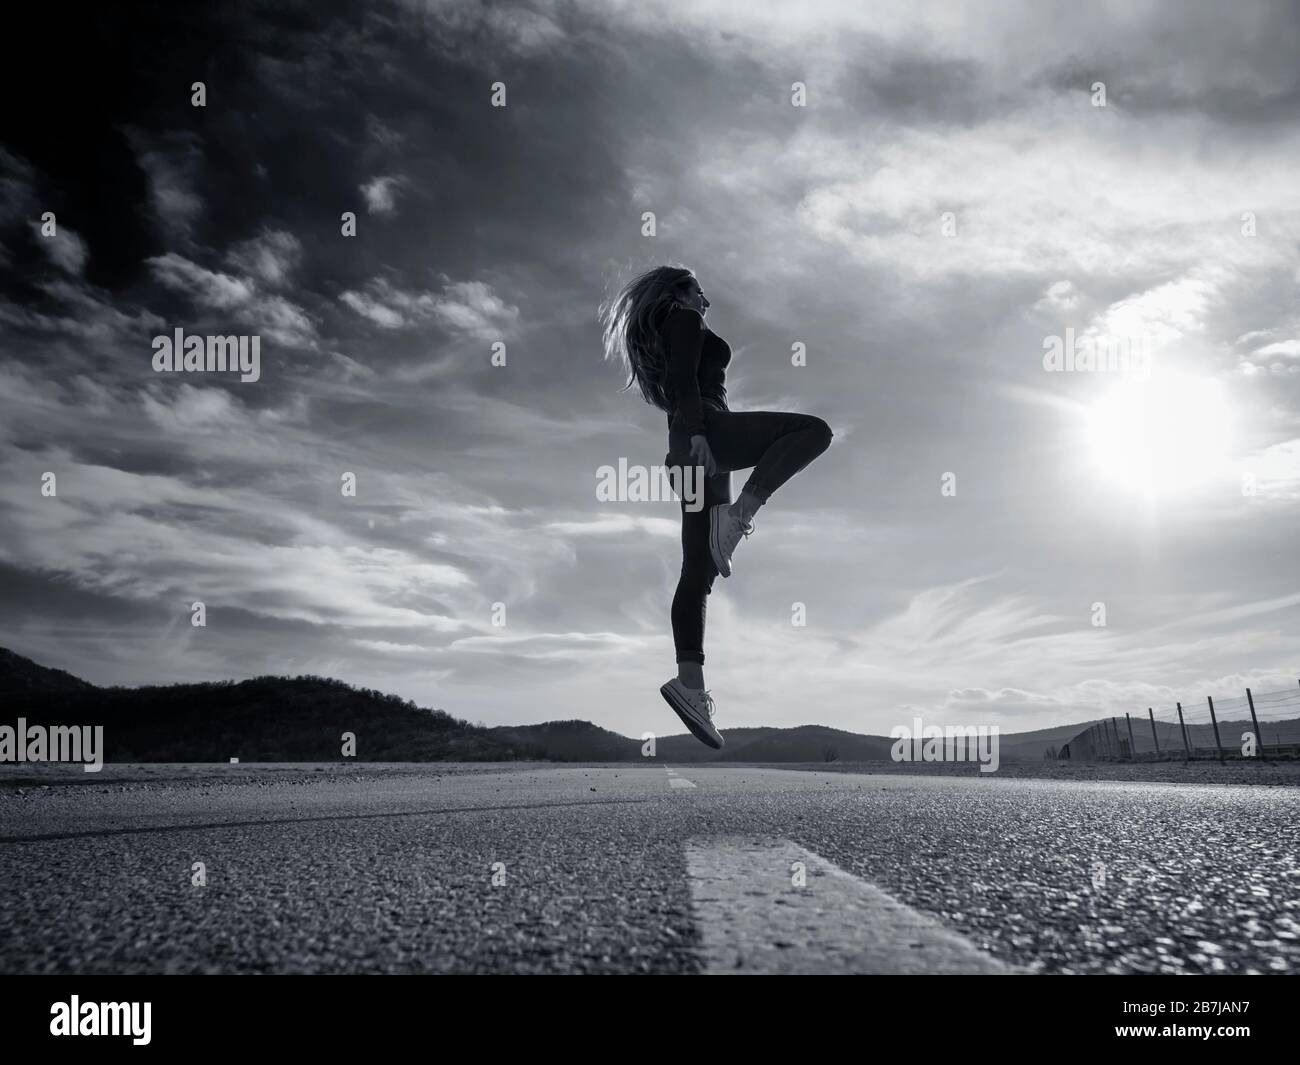 Slight jump on road low view teen girl wearing Red pullover denim pants denims sneakers silhouette scenic scenery landscape Stock Photo